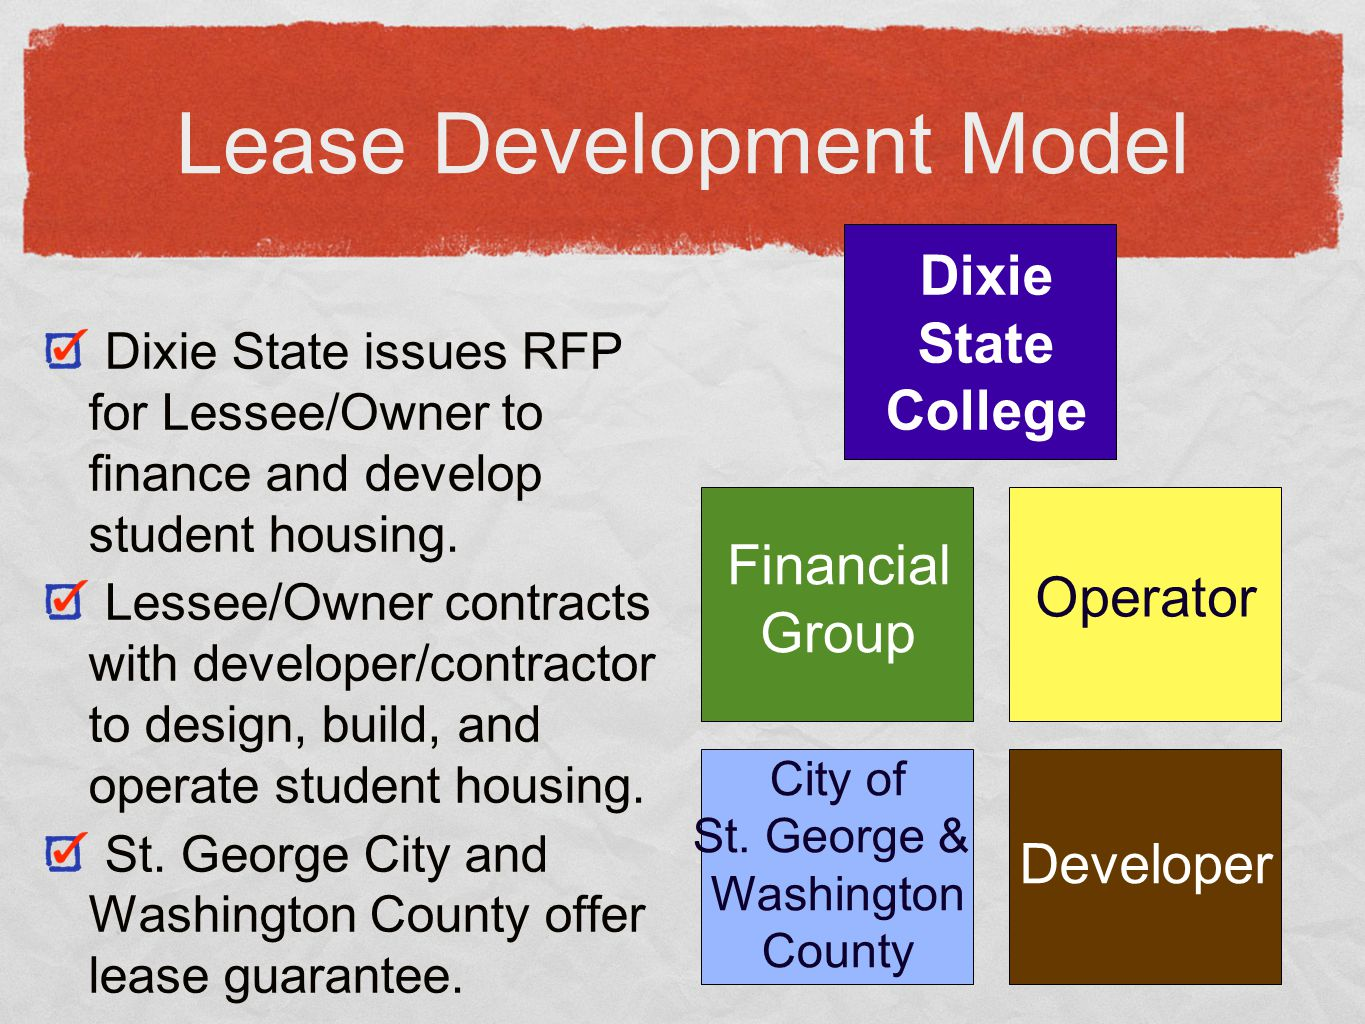 Lease Development Model Dixie State issues RFP for Lessee/Owner to finance and develop student housing.